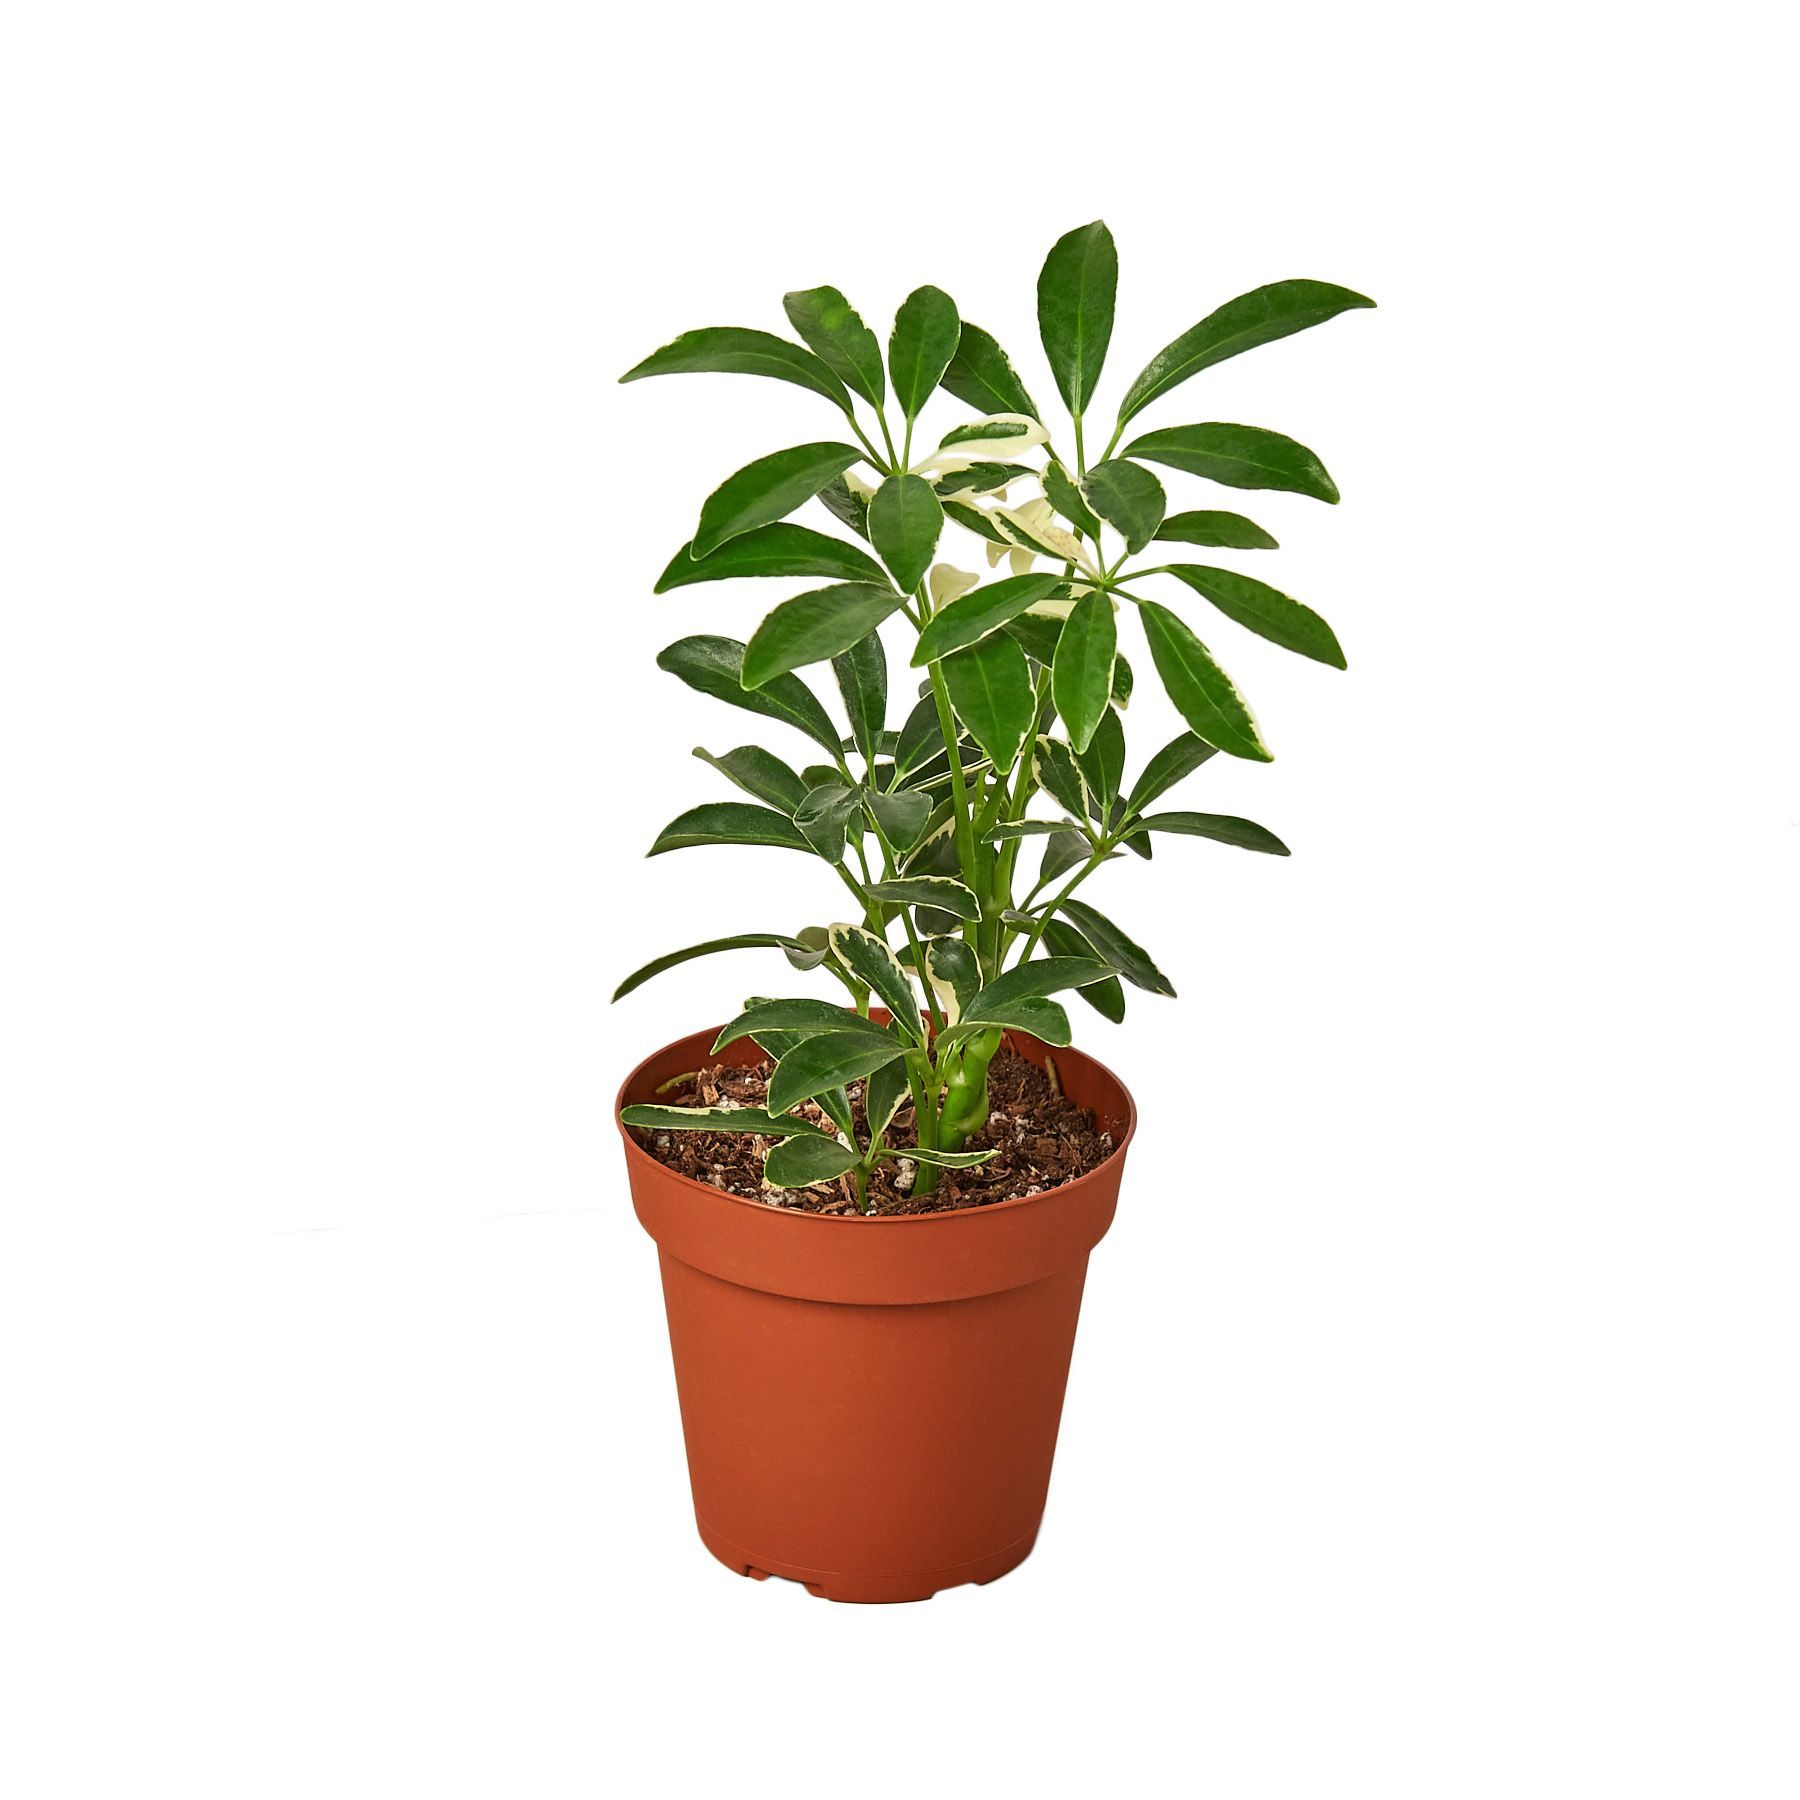 Varigated Schefflera Arboricola 'Moonlight' Indoor Houseplant-SproutSouth-Plant